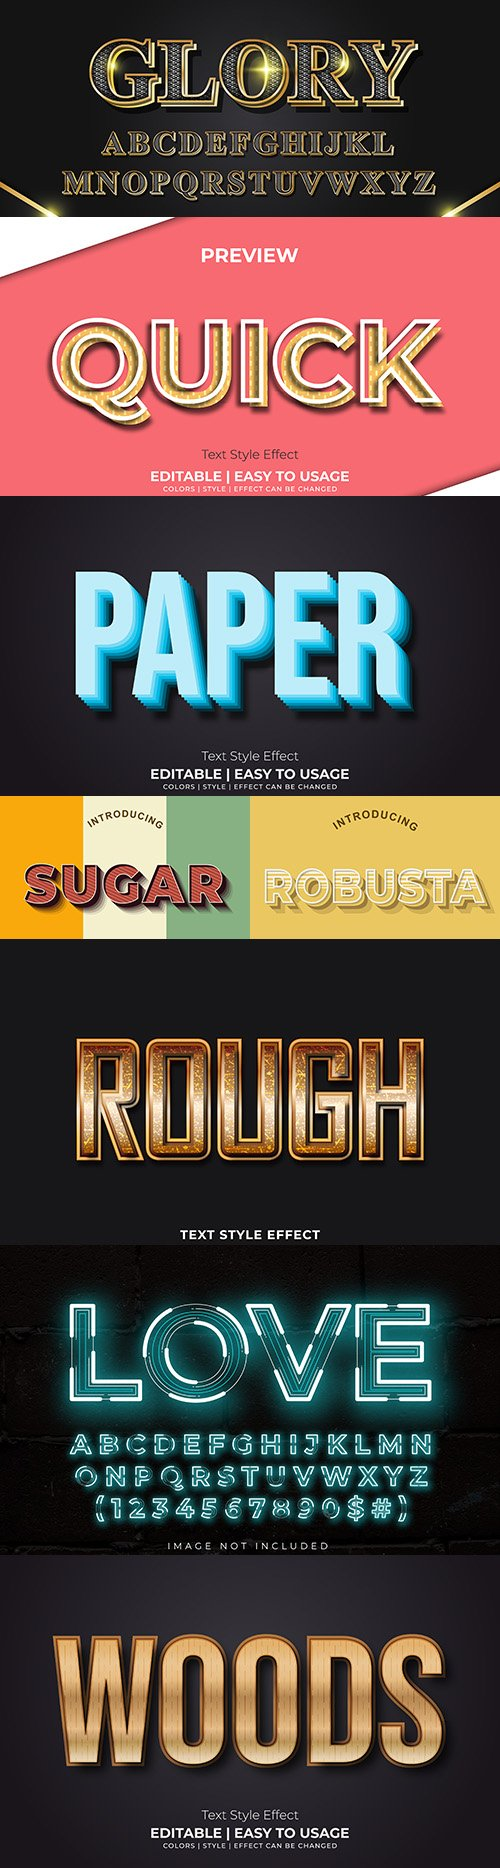 Editable font effect text collection illustration 22